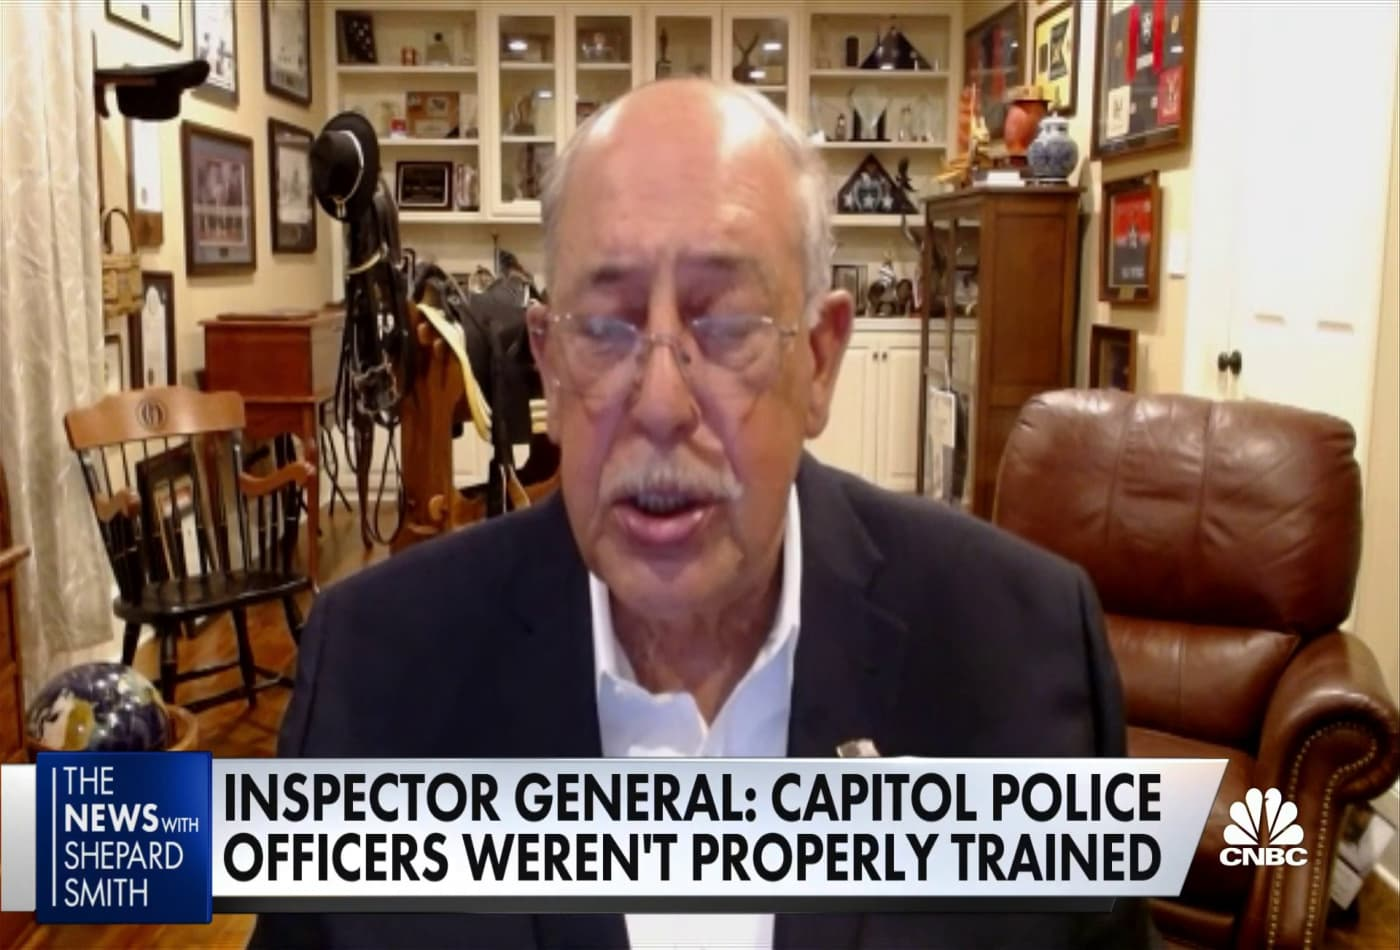 Retired Lt. General Honoré discusses why threats to the Capitol were ignored